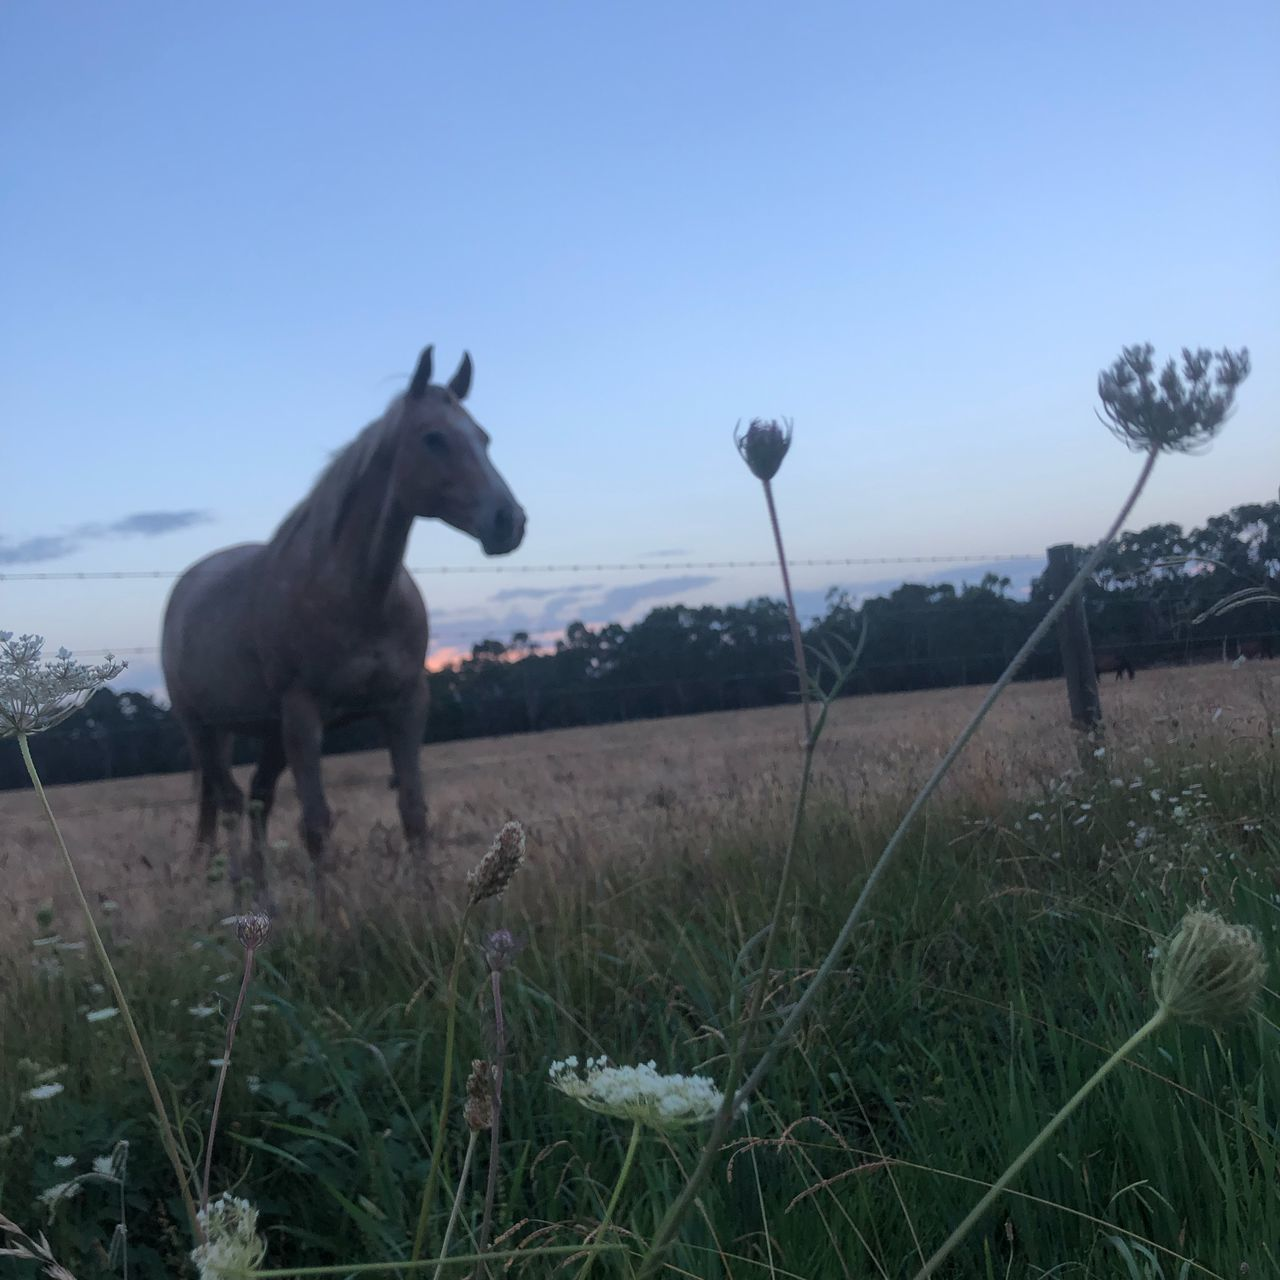 plant, mammal, field, sky, nature, land, grass, animal themes, no people, animal, domestic animals, environment, landscape, clear sky, domestic, day, one animal, livestock, pets, growth, outdoors, herbivorous